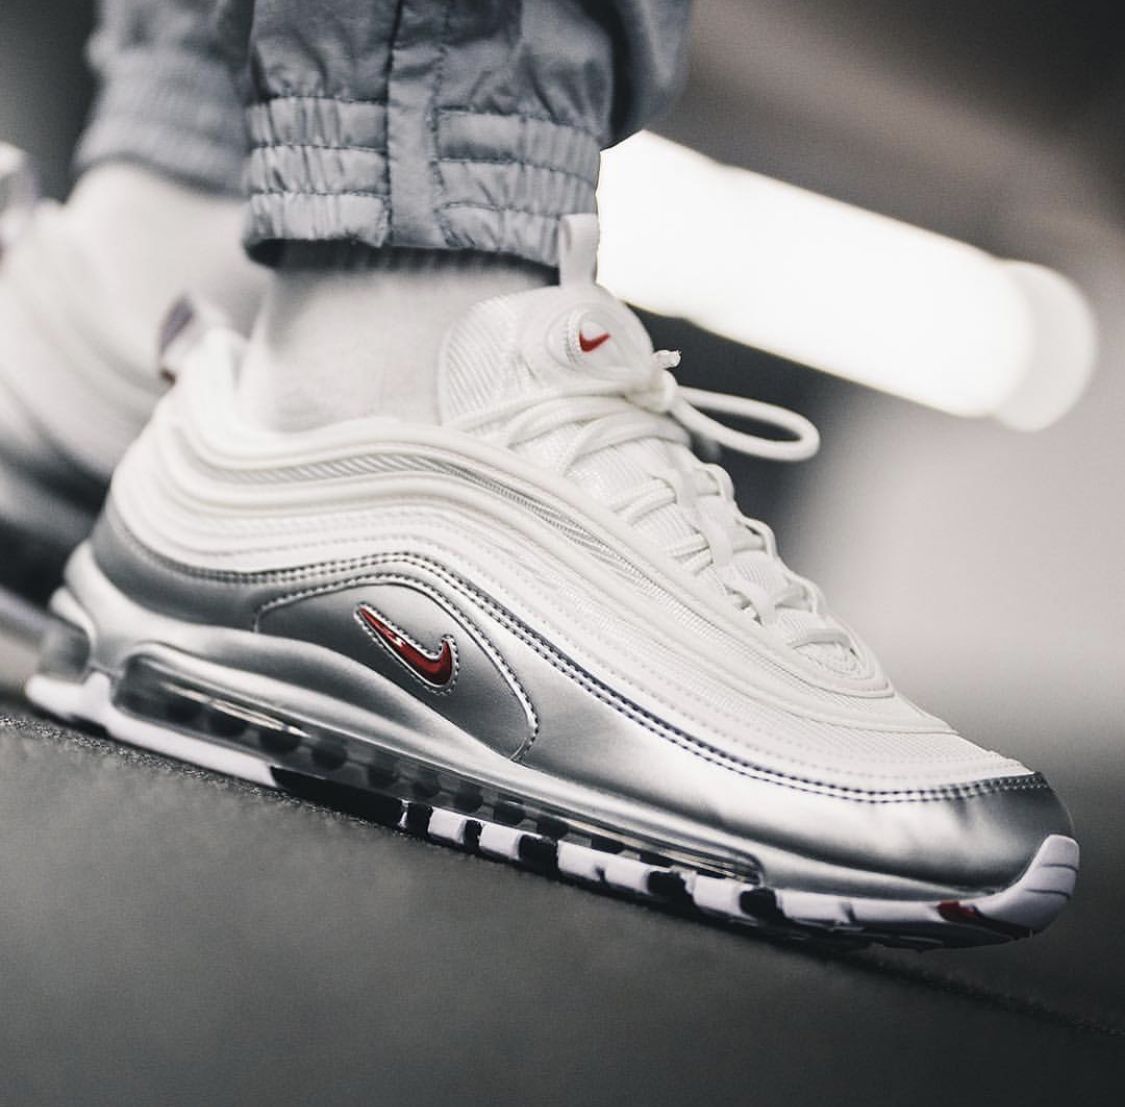 Now Available: Nike Air Max 97 QS Metallic Silver